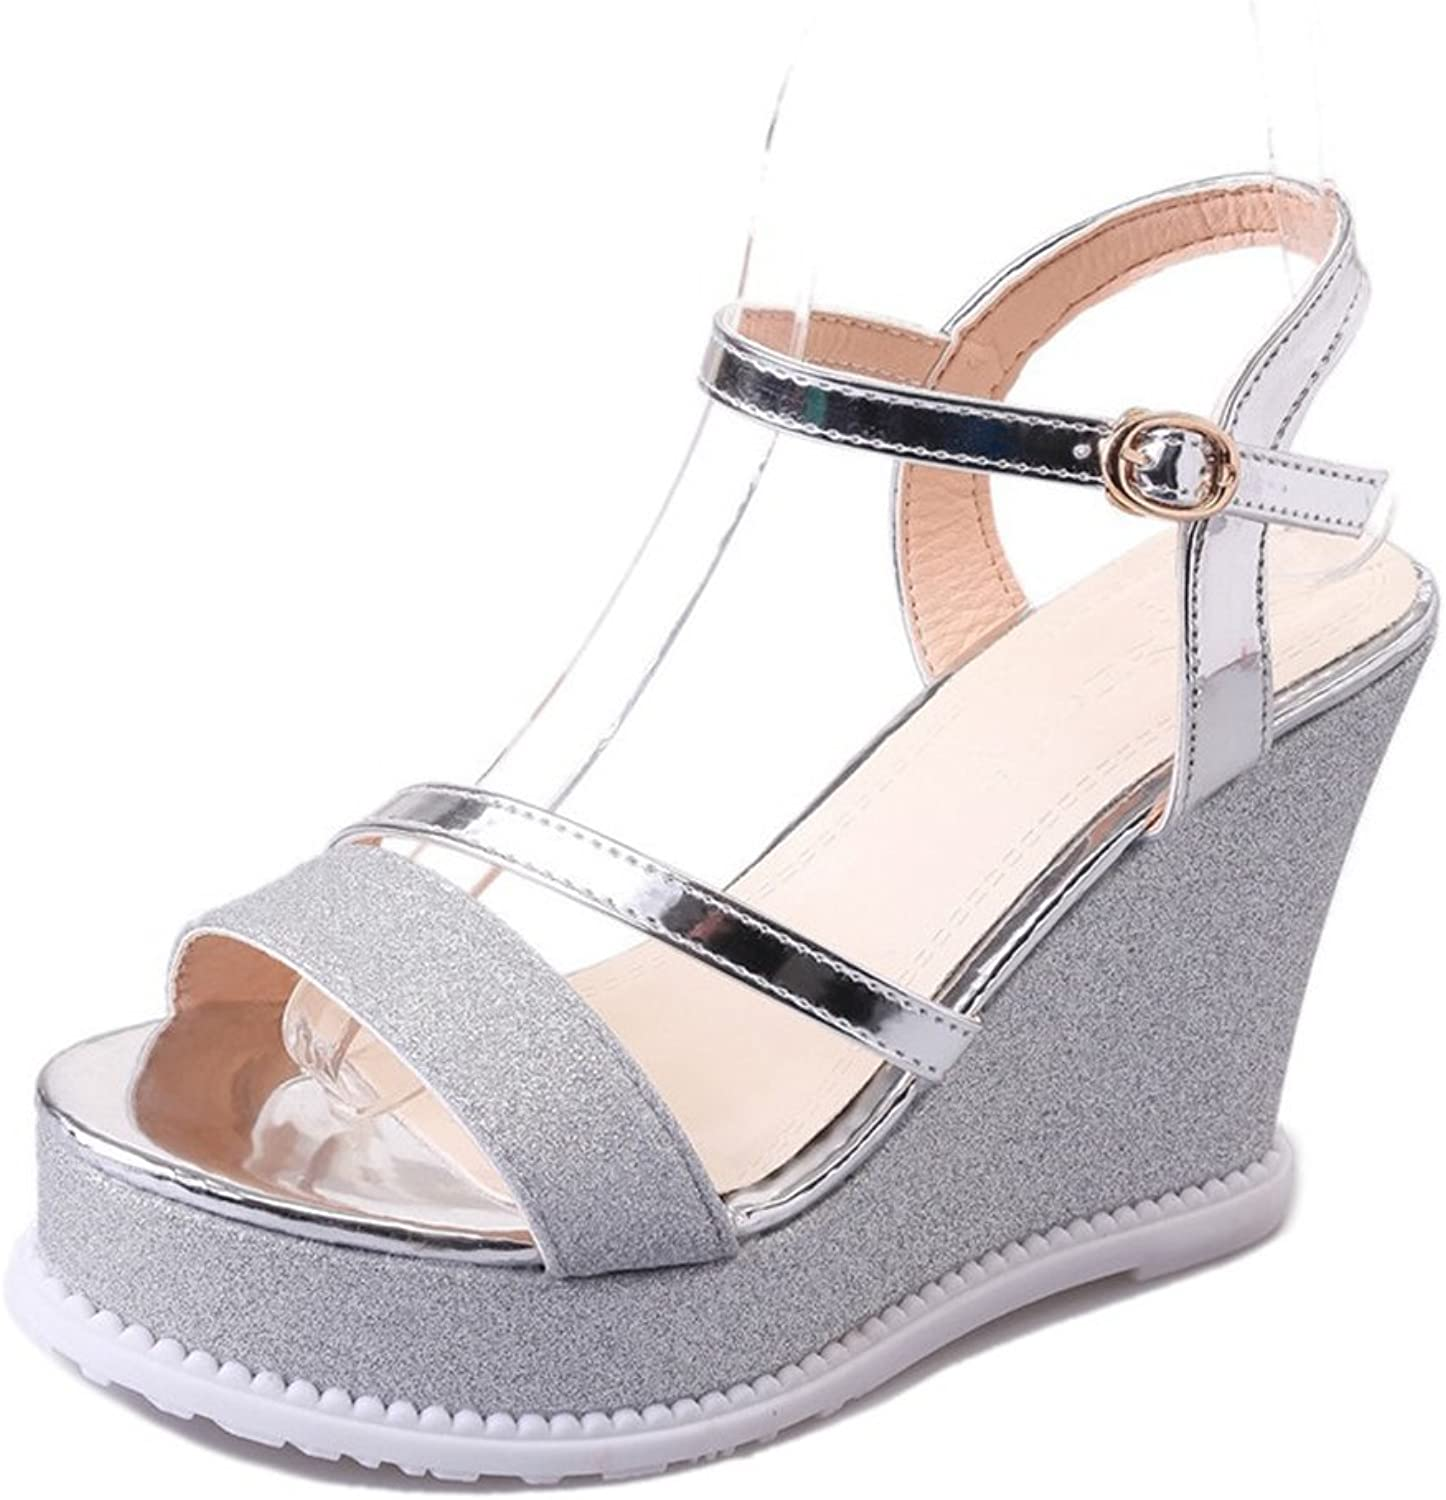 CYBLING Fashion Peep Toe Platform Wedge Sandals for Women High Heel Strappy shoes